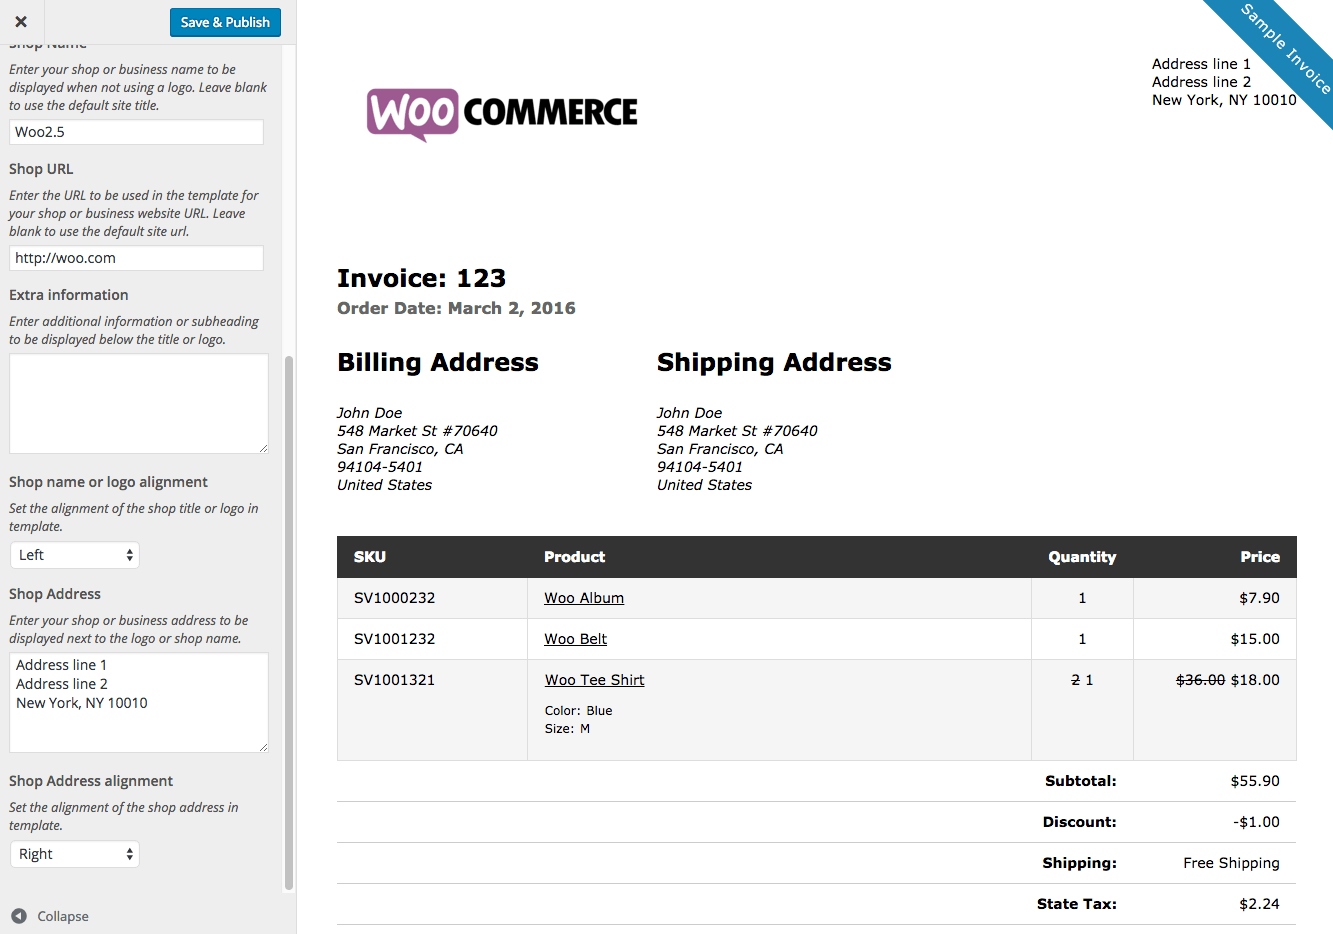 Breakupus  Mesmerizing Woocommerce Print Invoices Amp Packing Lists  Woocommerce Docs With Lovable Woocommerce Print Invoices  Packing Lists Customizer With Attractive Expenses Invoice Also What To Put On An Invoice In Addition Making An Invoice In Word And Garage Invoice Software As Well As Hmrc Vat Invoices Additionally Personalised Invoice Books Duplicate From Docswoocommercecom With Breakupus  Lovable Woocommerce Print Invoices Amp Packing Lists  Woocommerce Docs With Attractive Woocommerce Print Invoices  Packing Lists Customizer And Mesmerizing Expenses Invoice Also What To Put On An Invoice In Addition Making An Invoice In Word From Docswoocommercecom